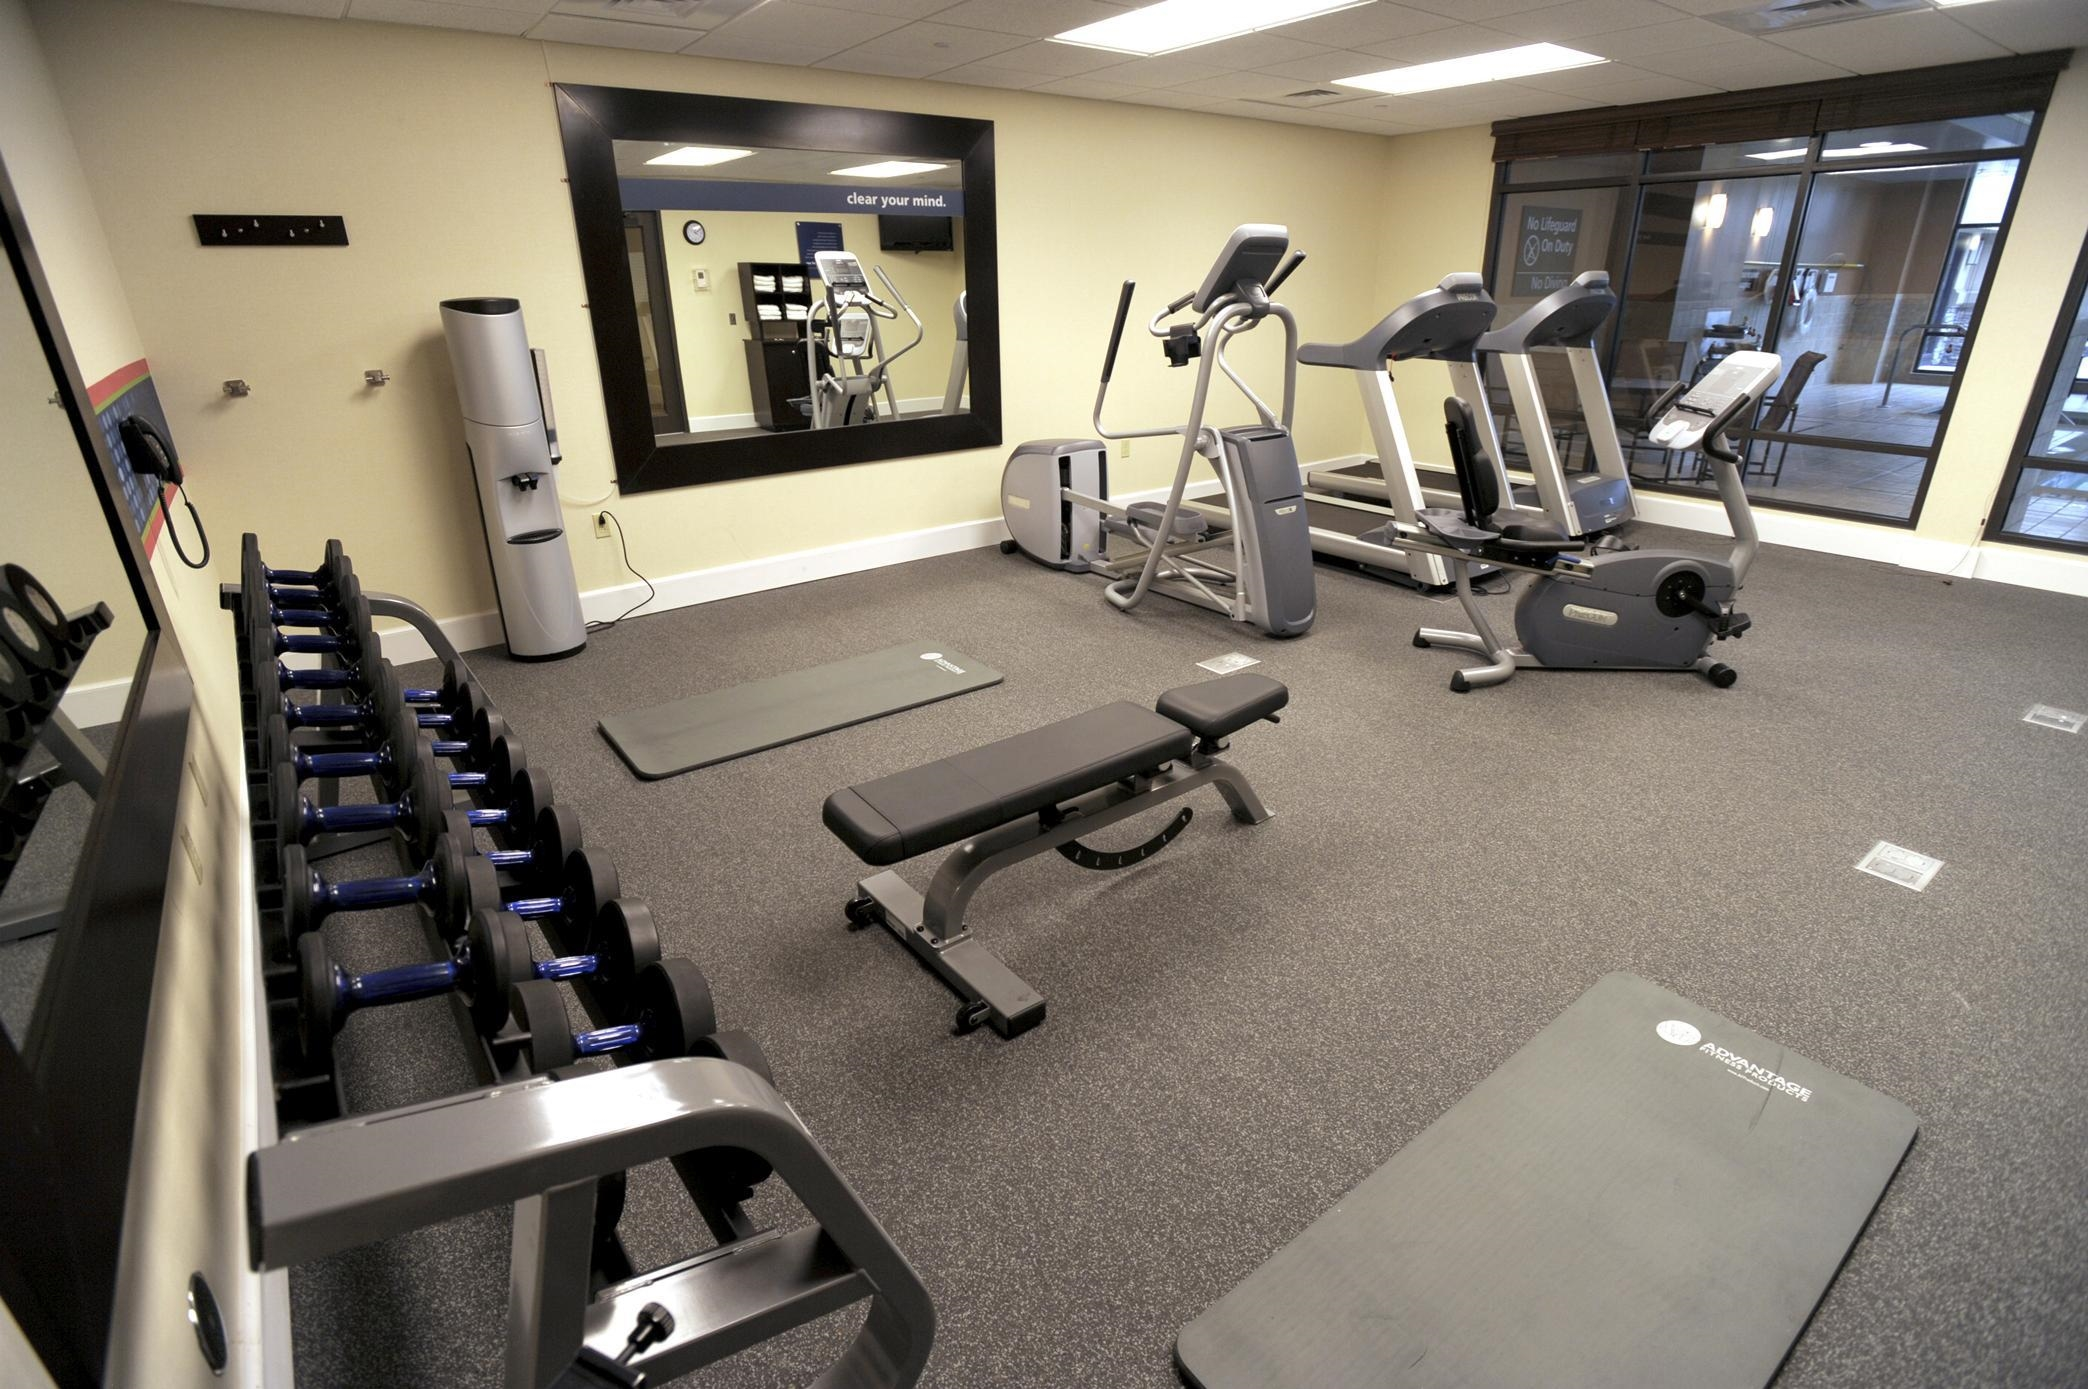 Hampton Inn & Suites Chadds Ford image 7